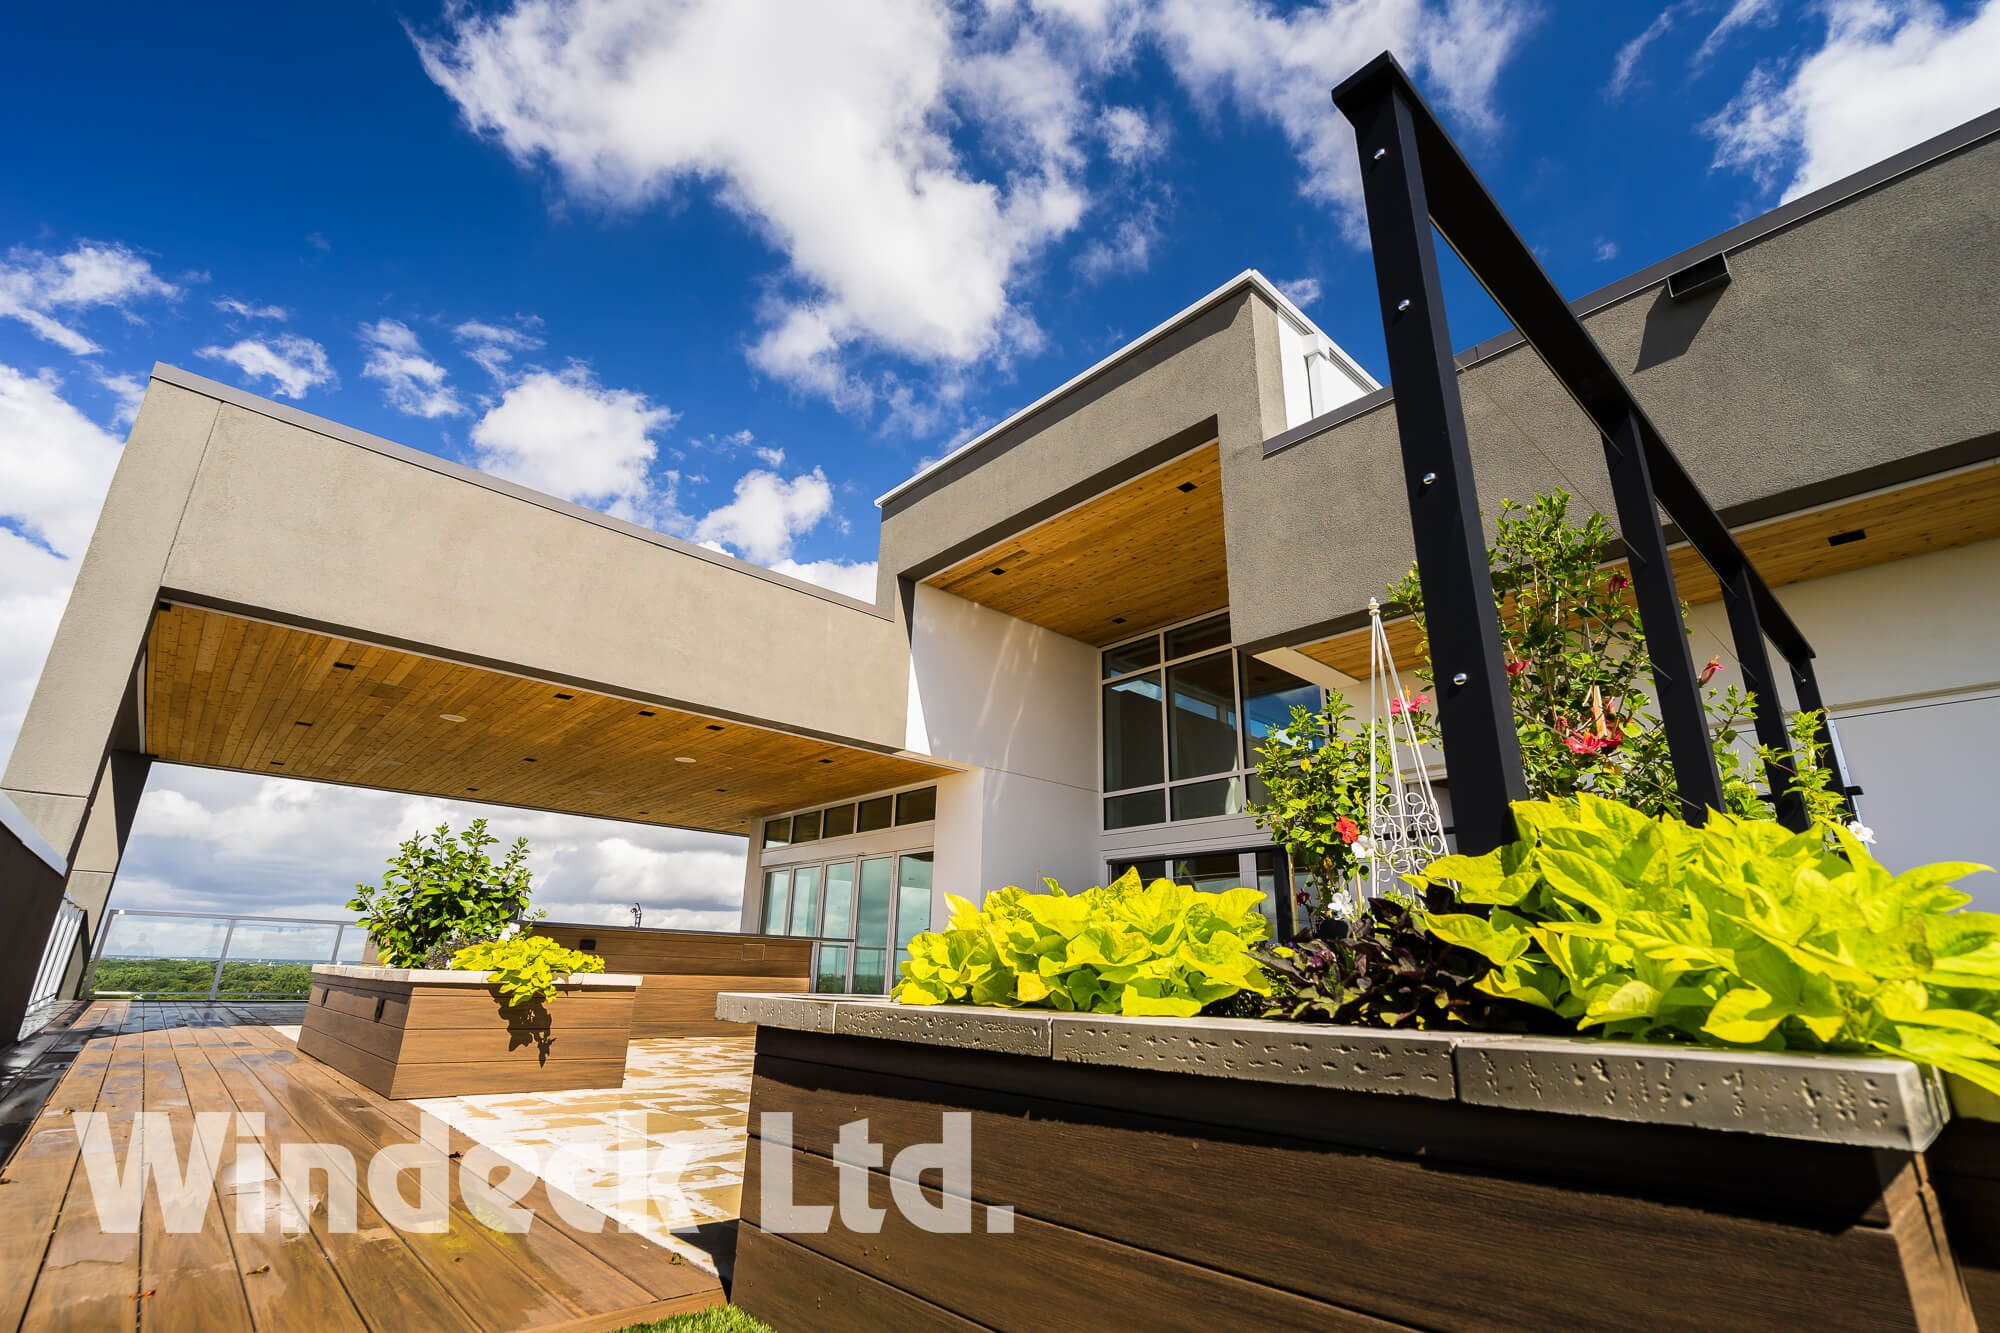 Outdoor Living Spaces - Windeck Ltd. - Deck Builder Winnipeg, Manitoba